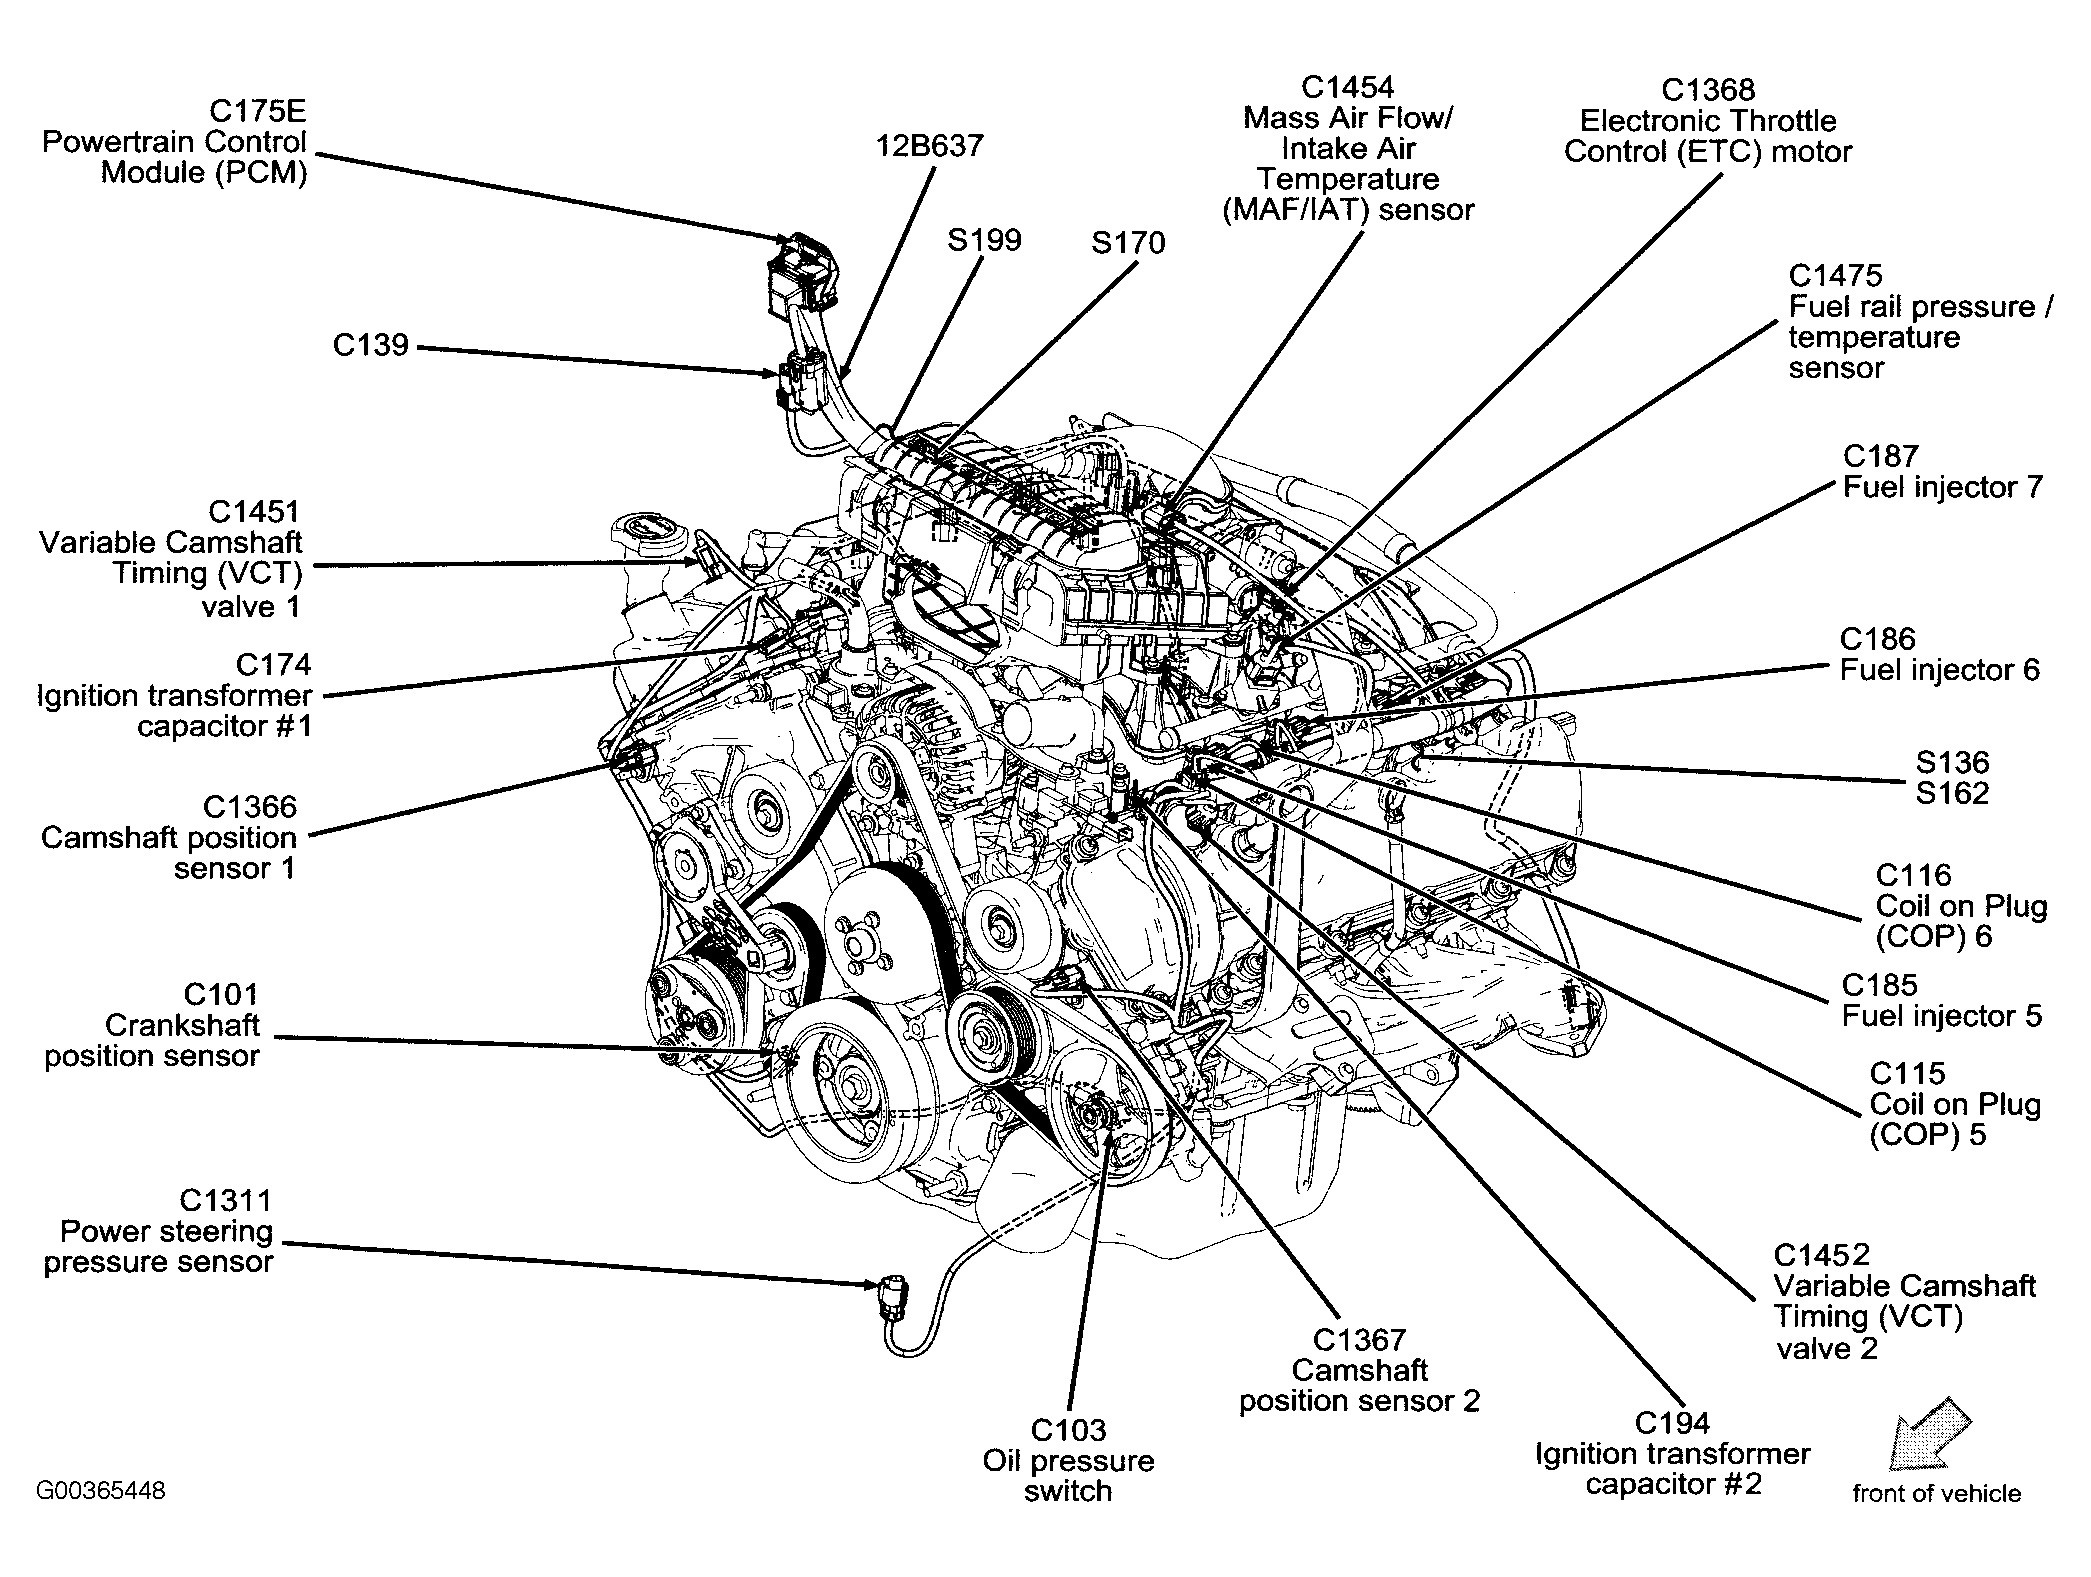 1997 ford F150 4 6 Engine Diagram 2 ford Escape Engine Diagram Simple Guide About Wiring Diagram • Of 1997 ford F150 4 6 Engine Diagram 2